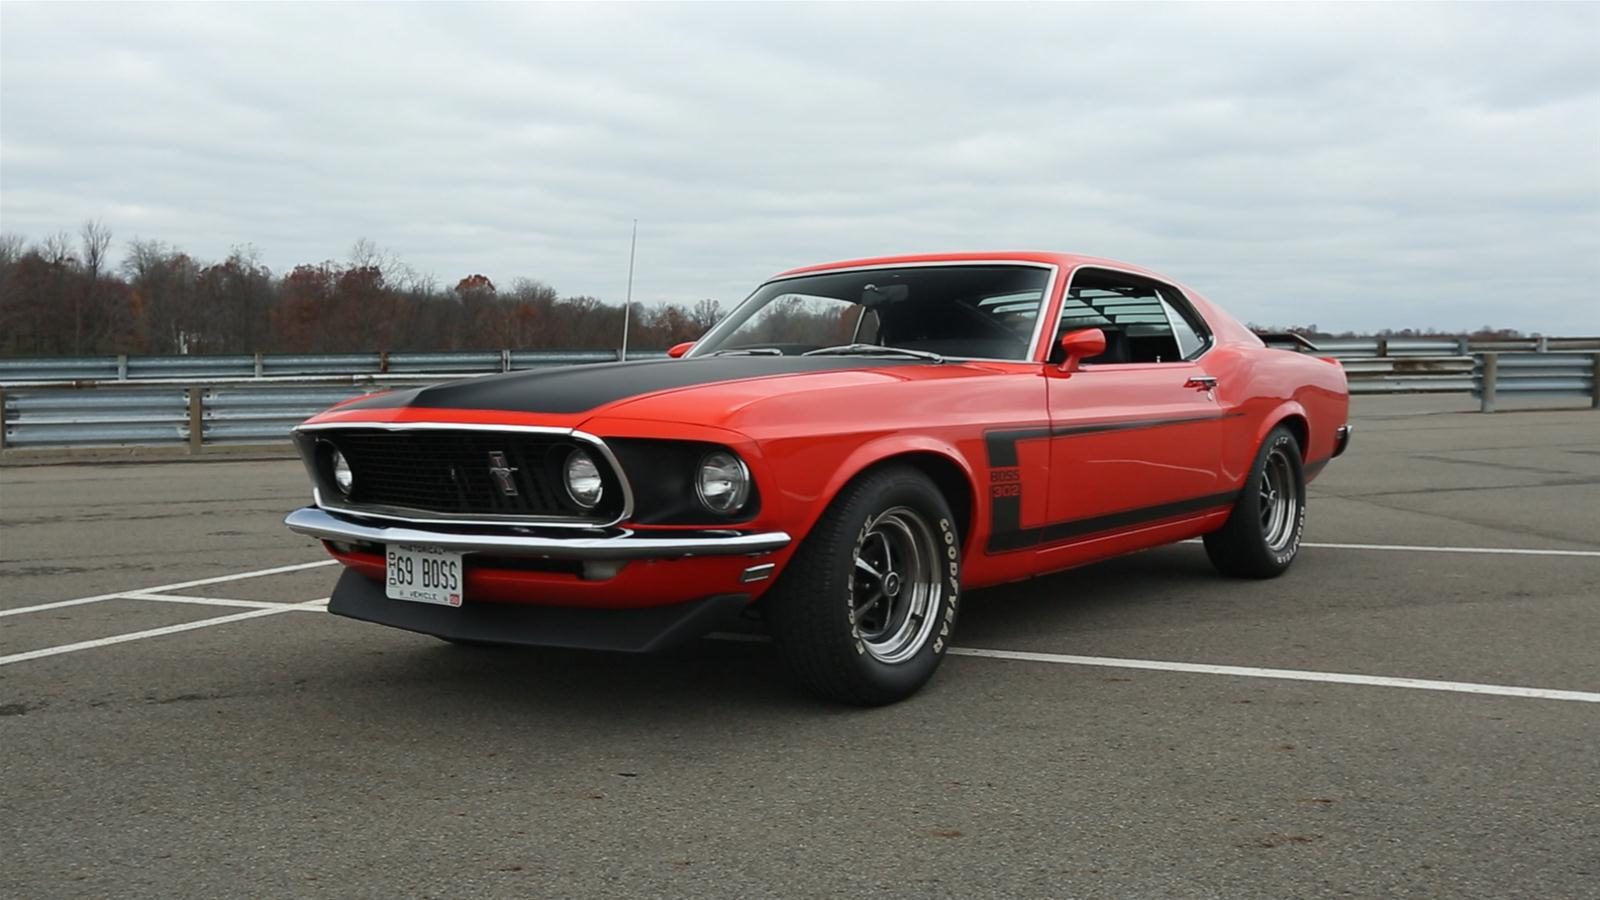 Ford Mustang Boss 302 >> Fat N Furious 1969 Ford Mustang Boss 302 Cooling Combos Sum Csumfffm21